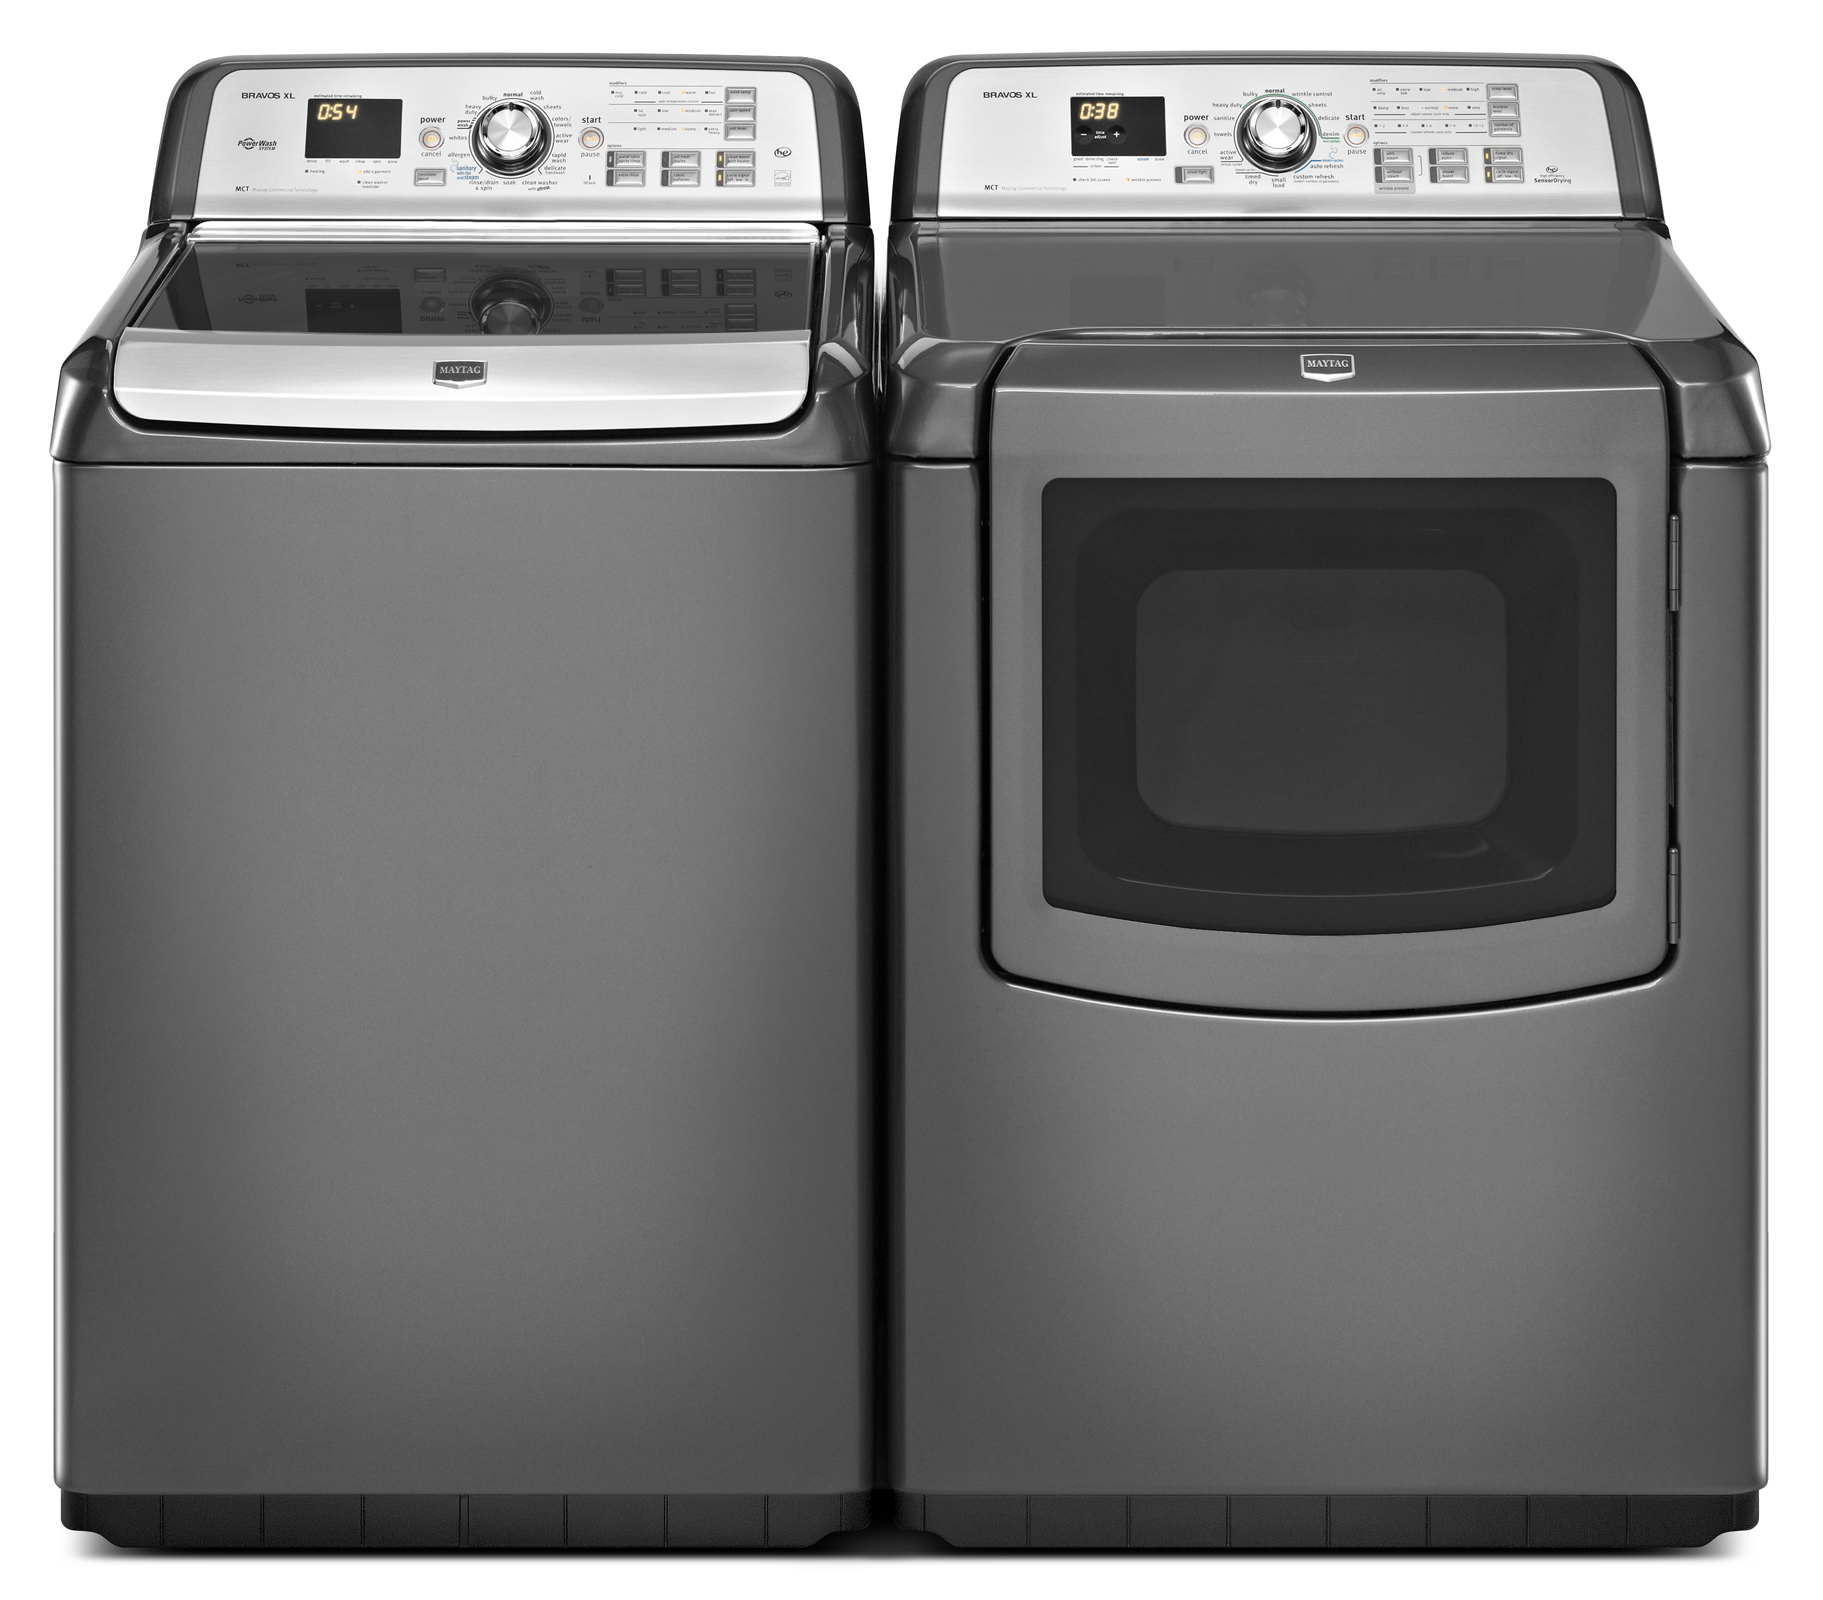 Maytag 4.8 cu. ft. Bravos XL® HE Top-Load Washer w/ Oxi & Steam - Granite